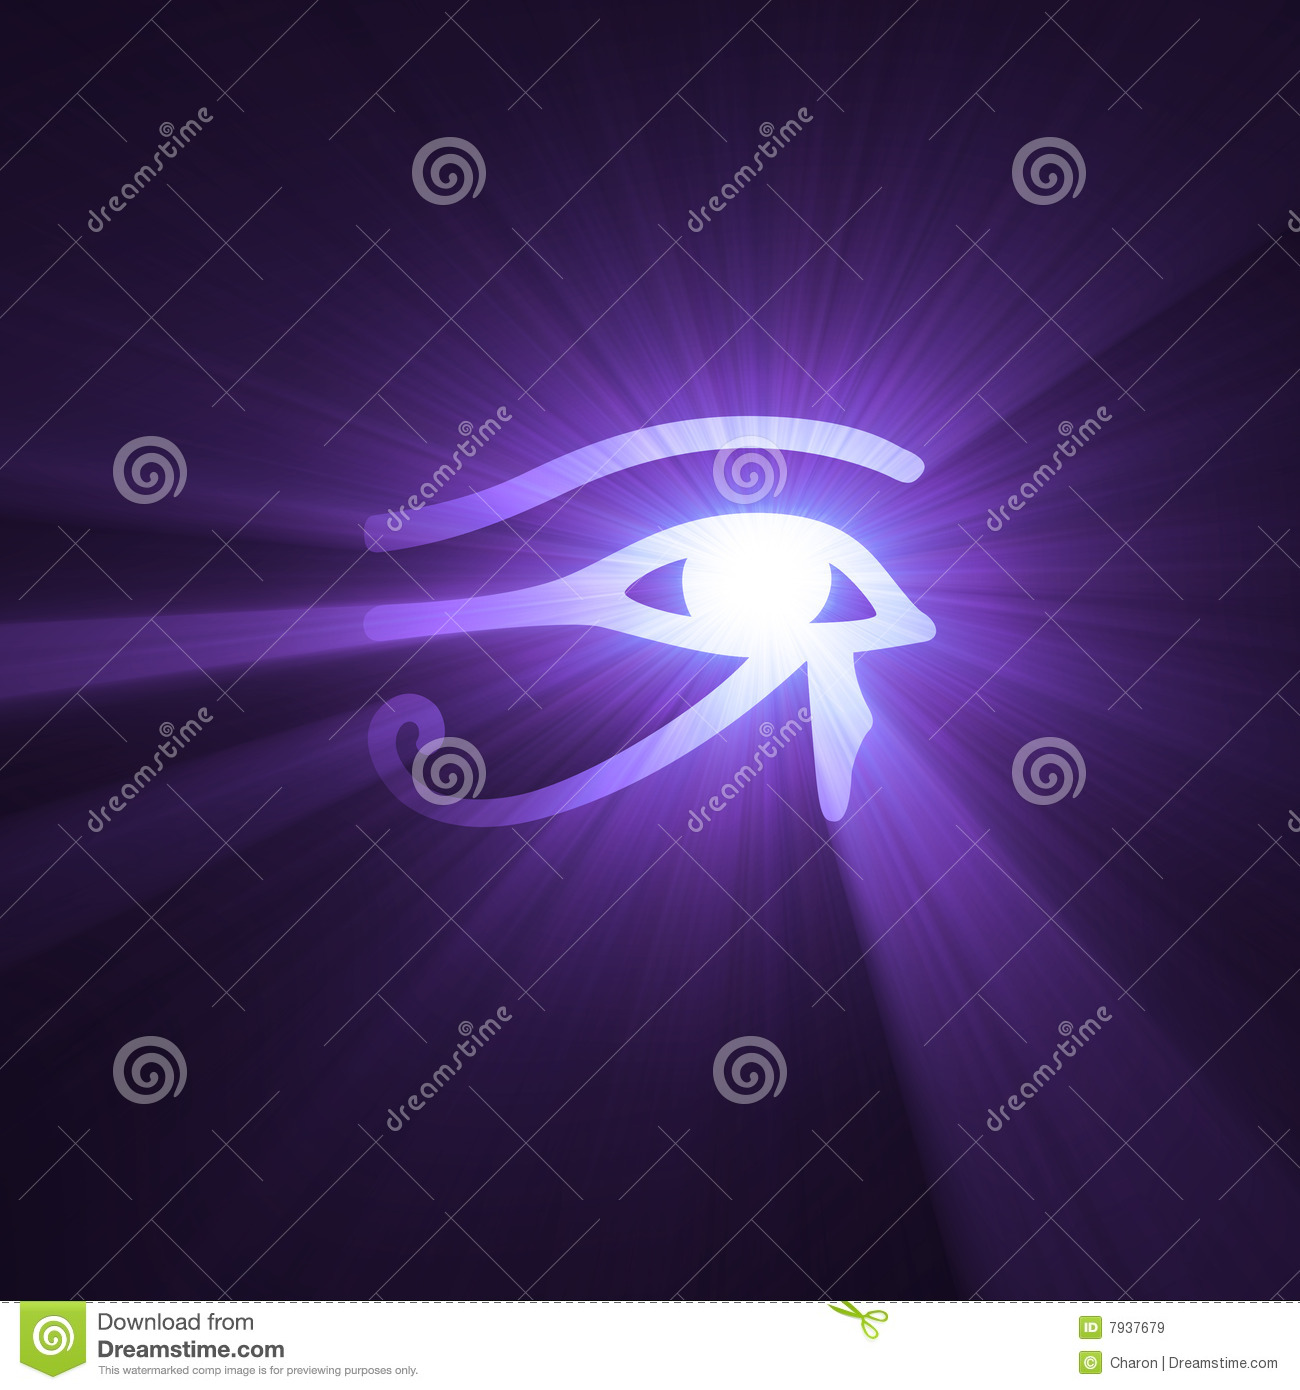 20120624 light as well Royalty Free Stock Photo Eye Horus Egyptian Symbol Light Flare Image7937675 additionally Light moreover Search also Shining Star. on light shining from heaven